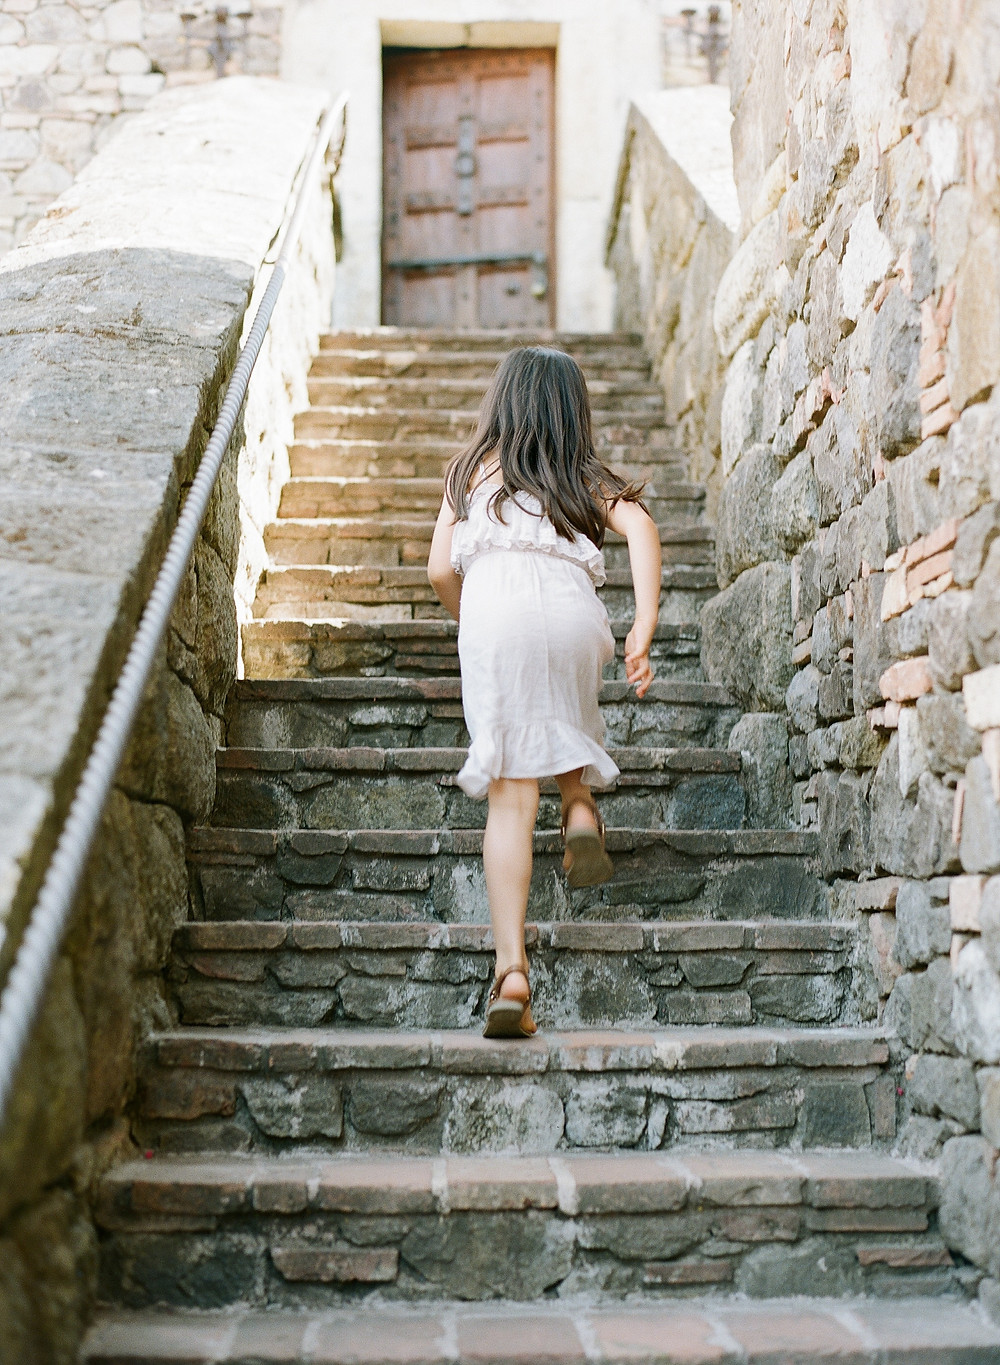 Little girl running up stone steps during family portraits on film at Castello di Amorosa